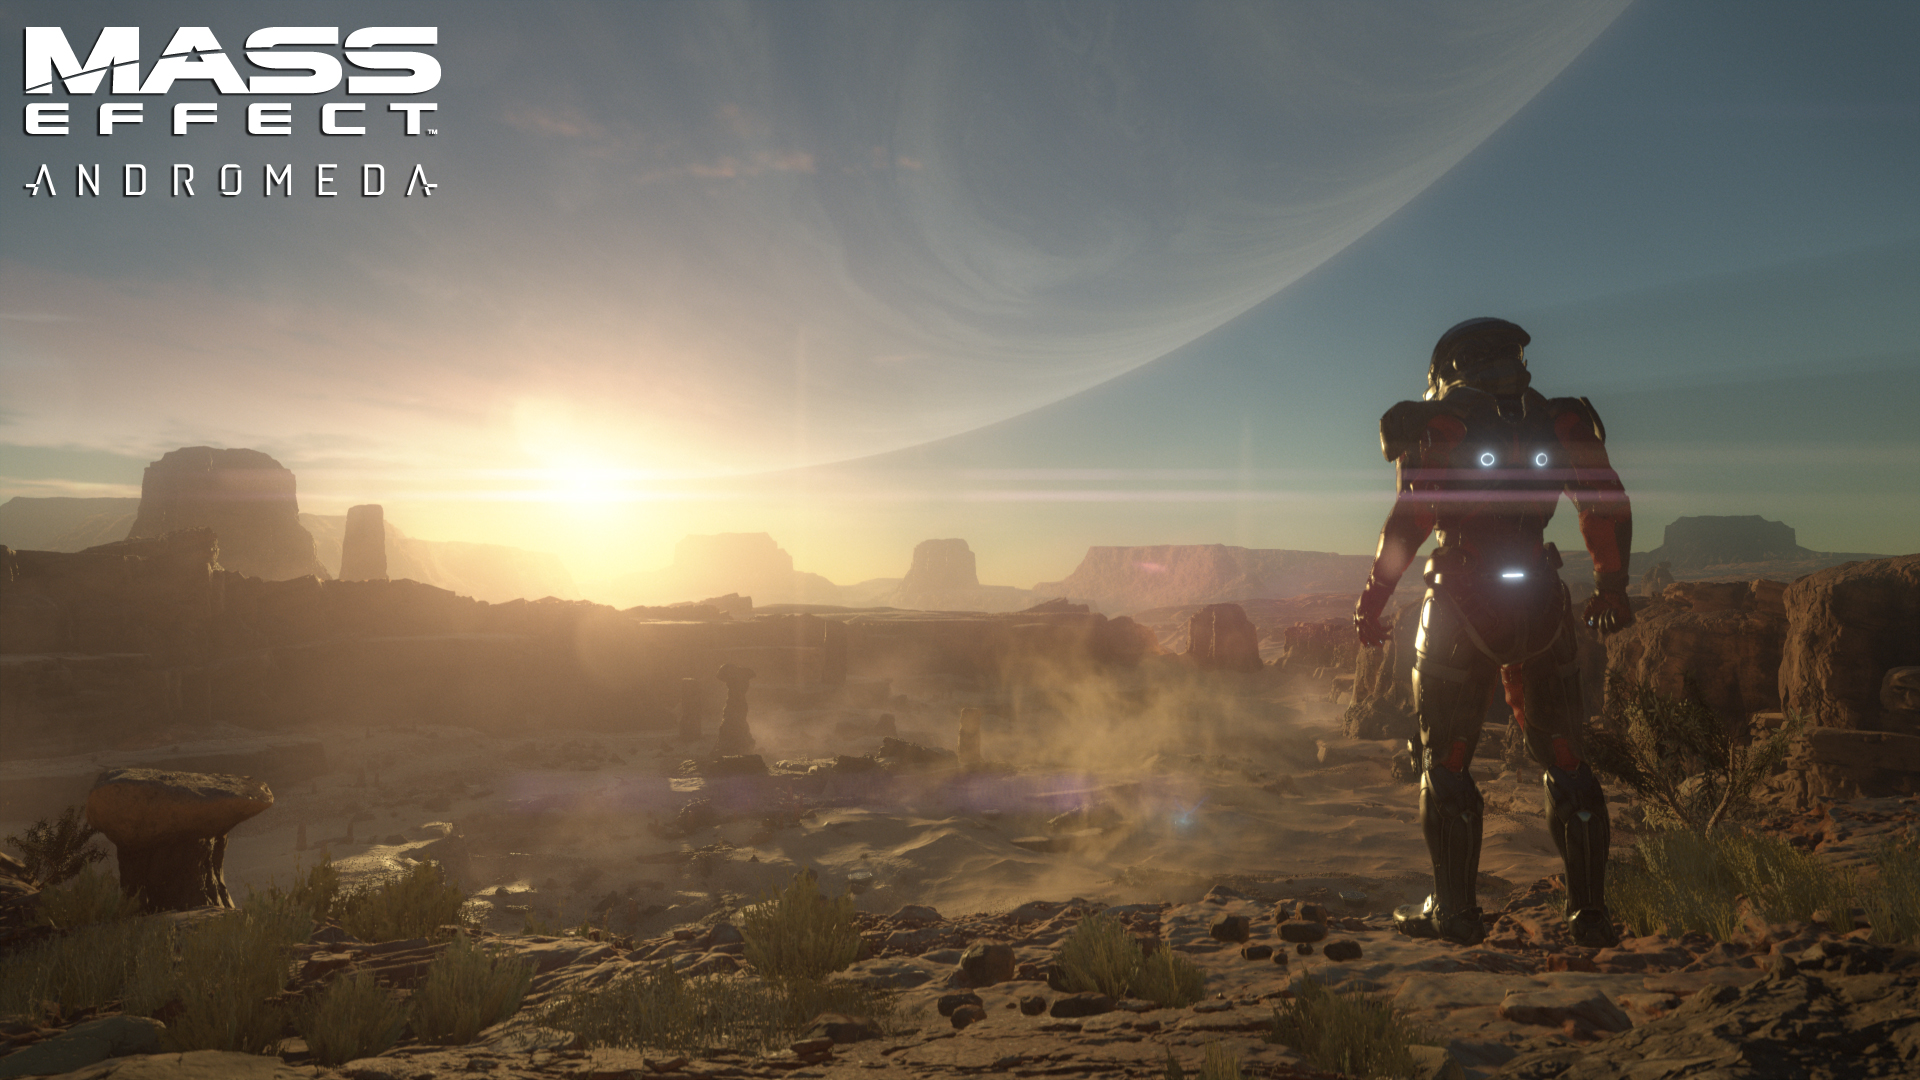 Mass Effect Andromeda Reportedly Looks Incredible With Hugely Improved Facial Animations More